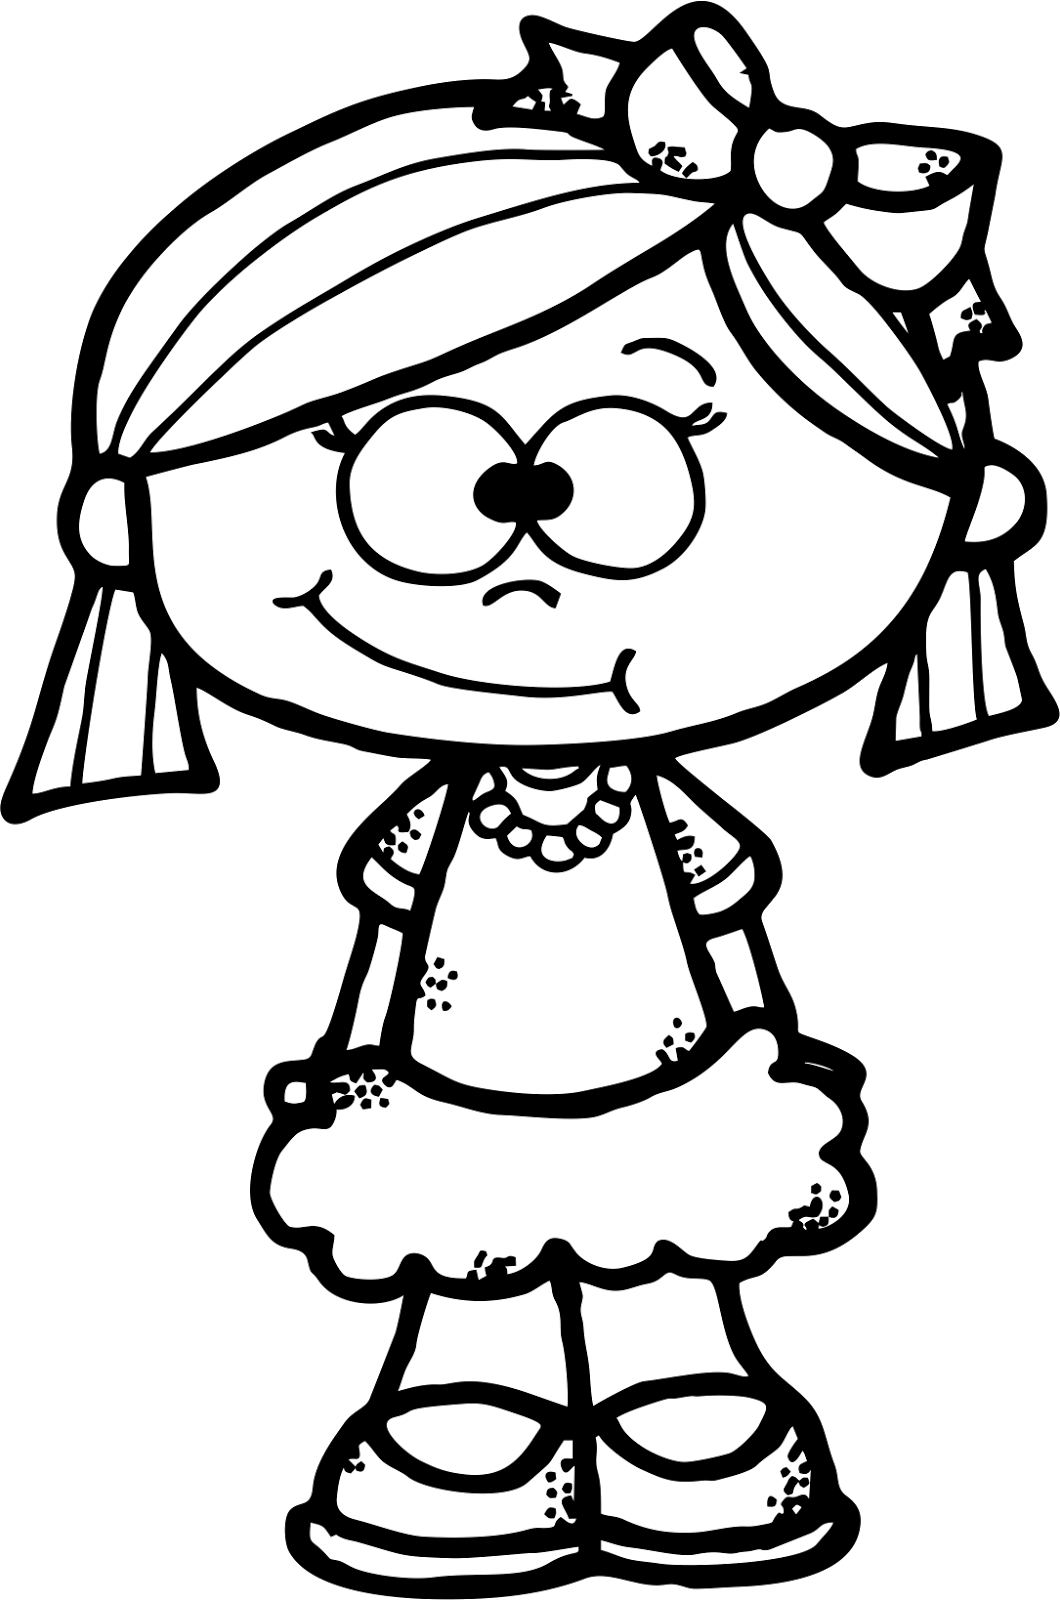 Free black and white pete the cat clipart clip black and white WorksheetJunkie: Cute girl Clipart Freebie | dibujos | Pinterest ... clip black and white